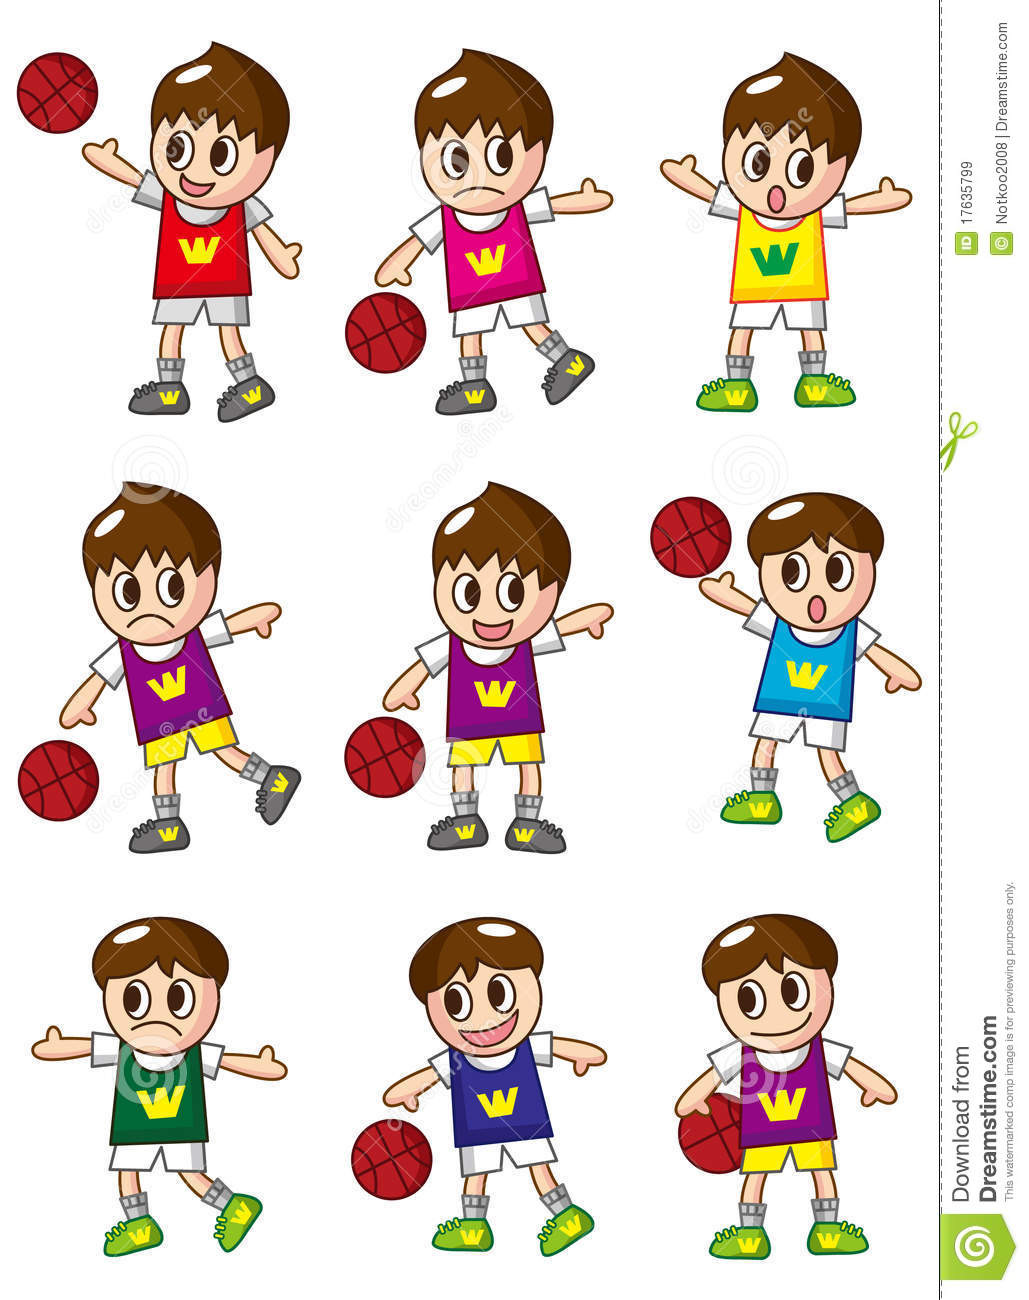 1029x1300 how to draw a basketball player basketball players drawing